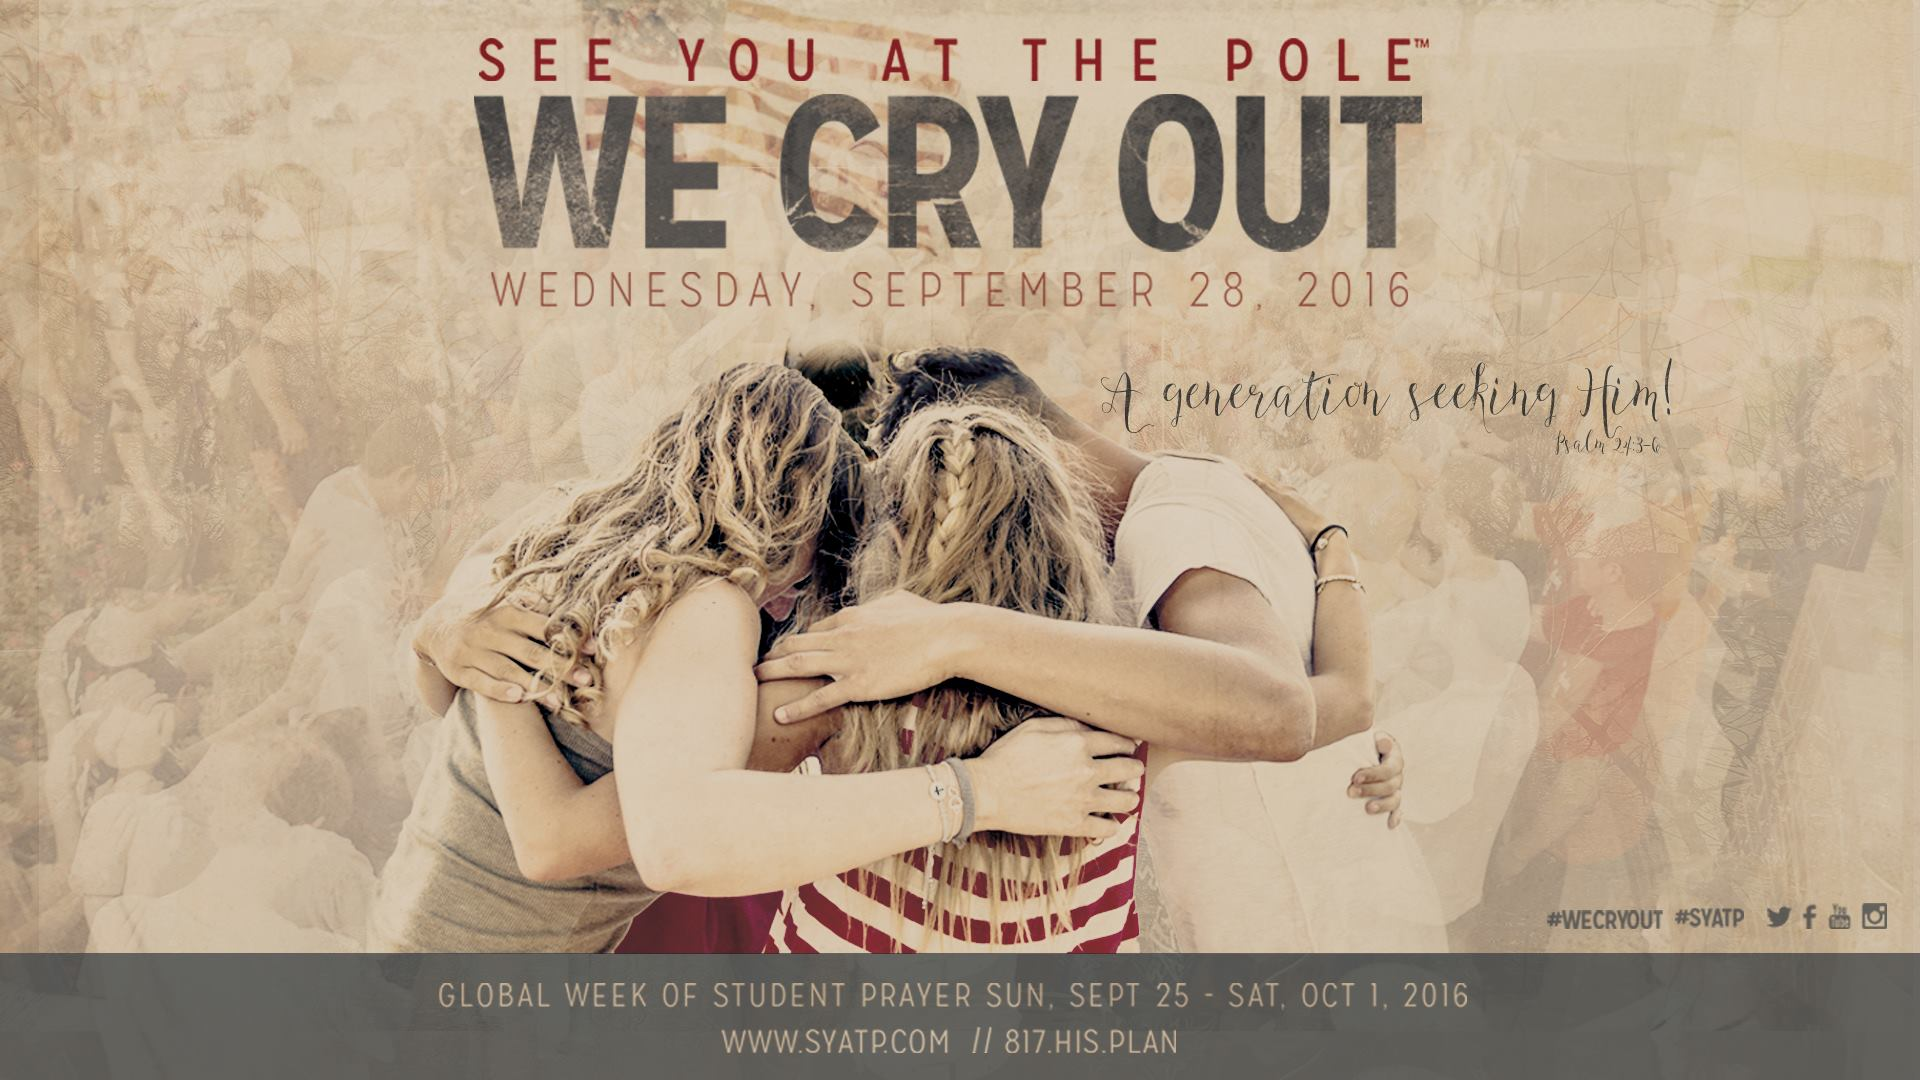 In Texas School District, Teachers Joined Students for See You at the Pole Prayer Event